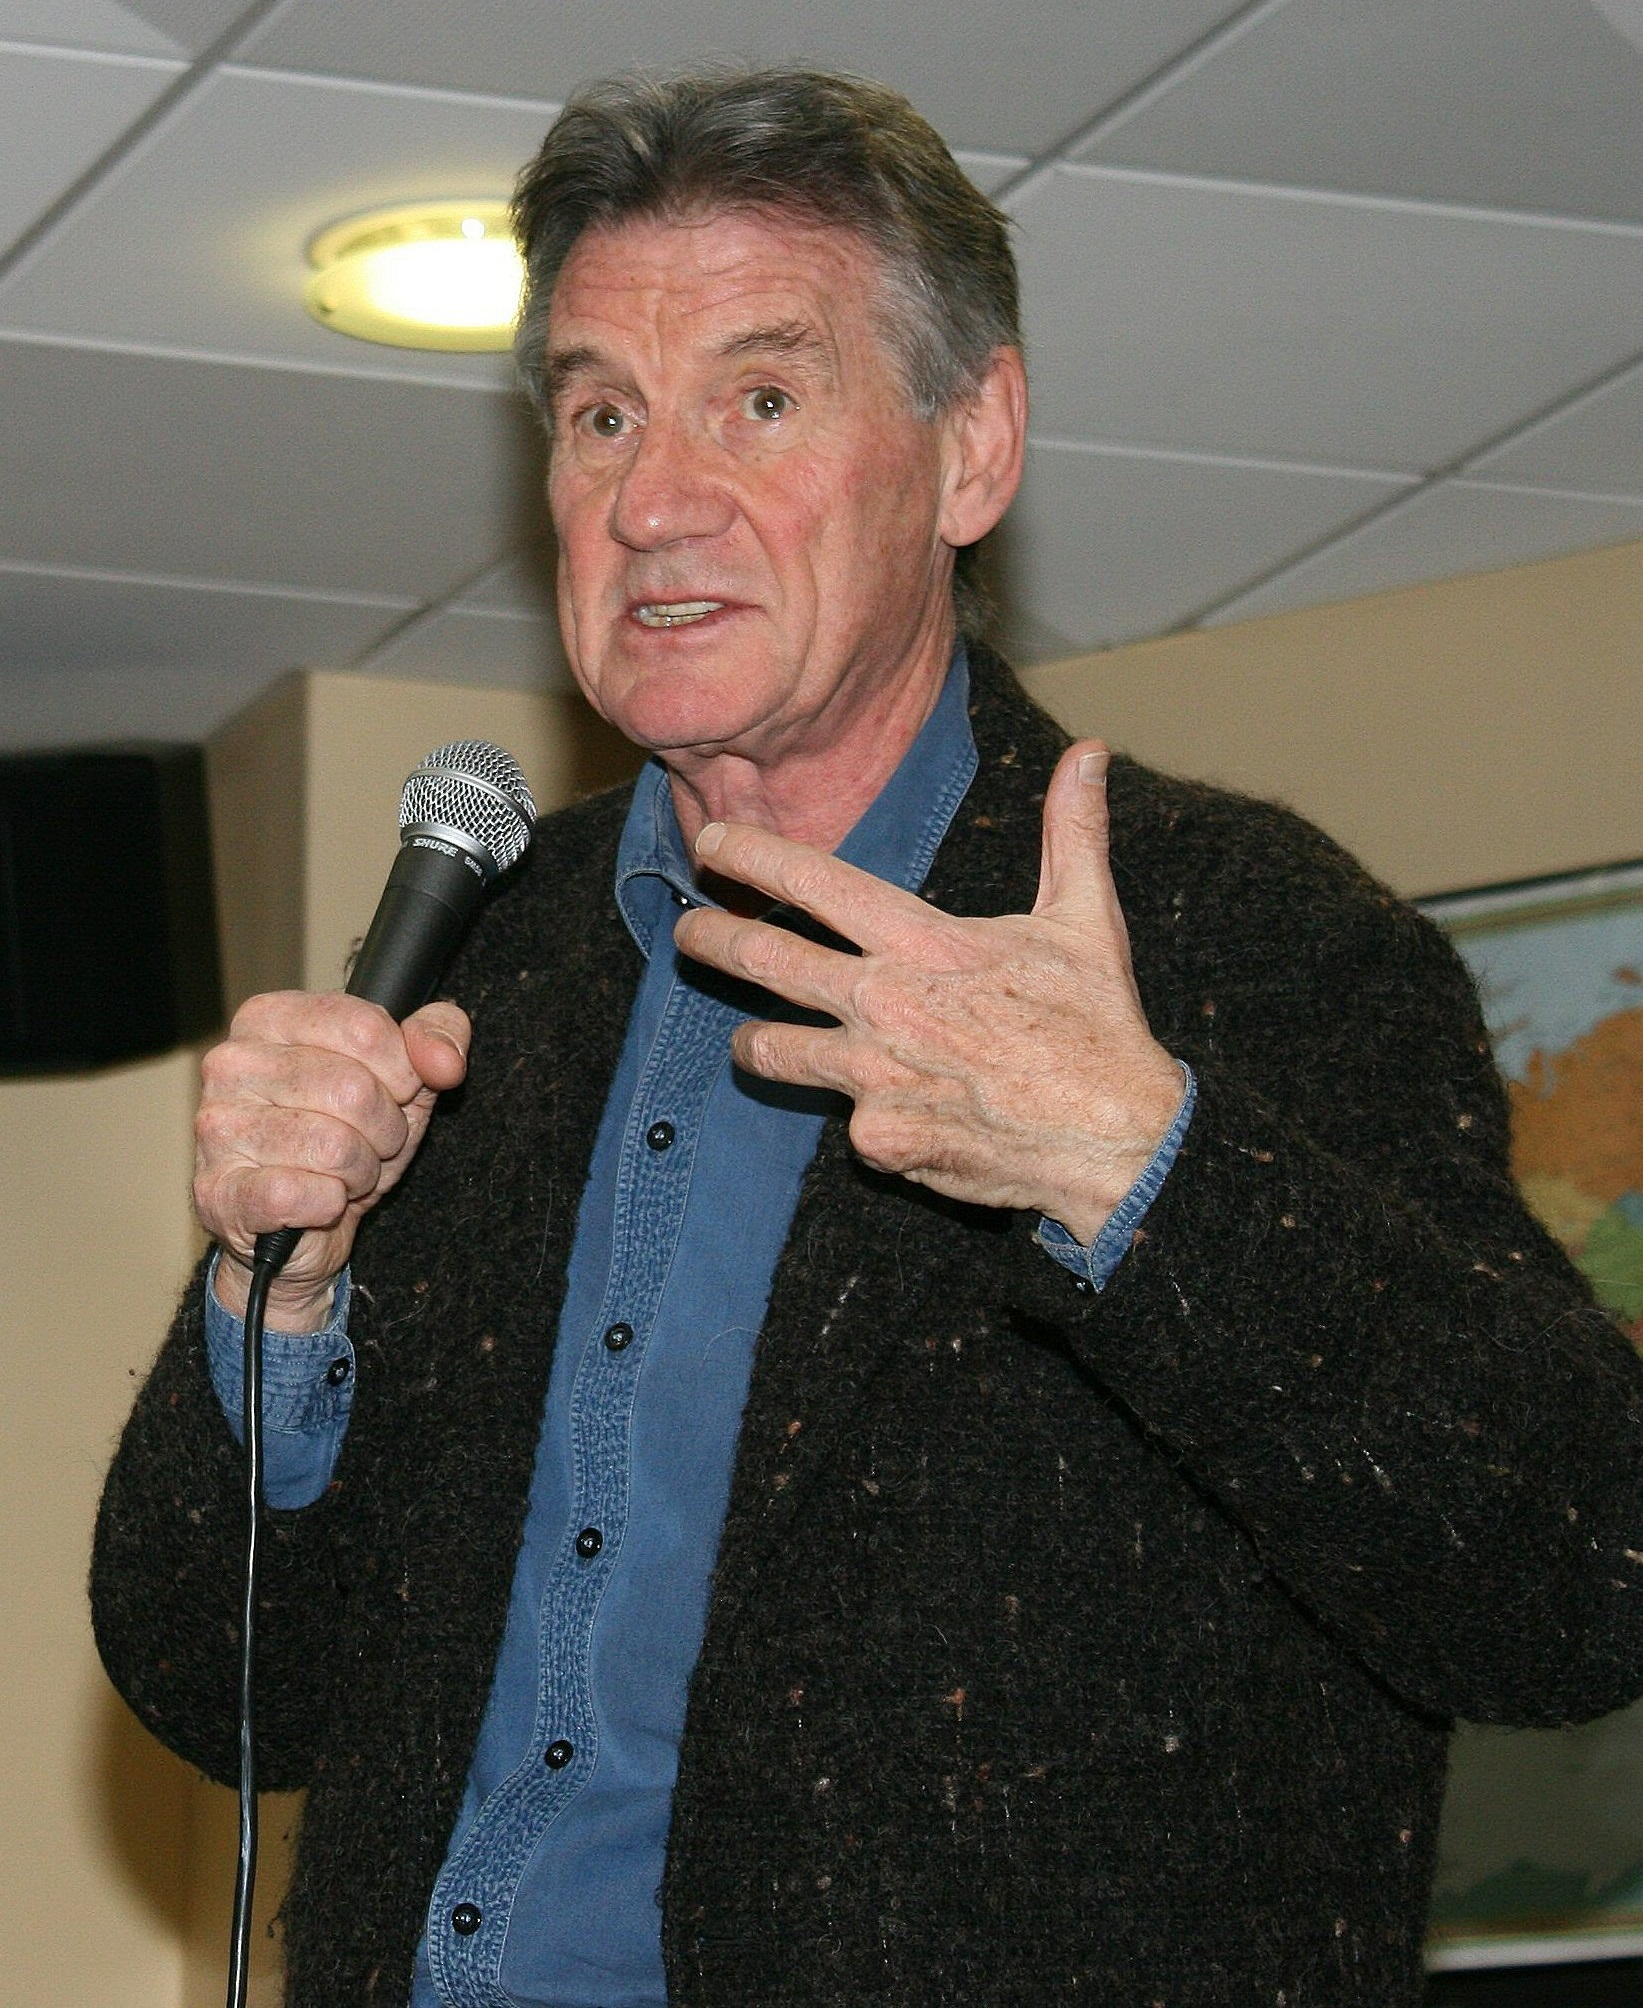 photo of Michael Palin